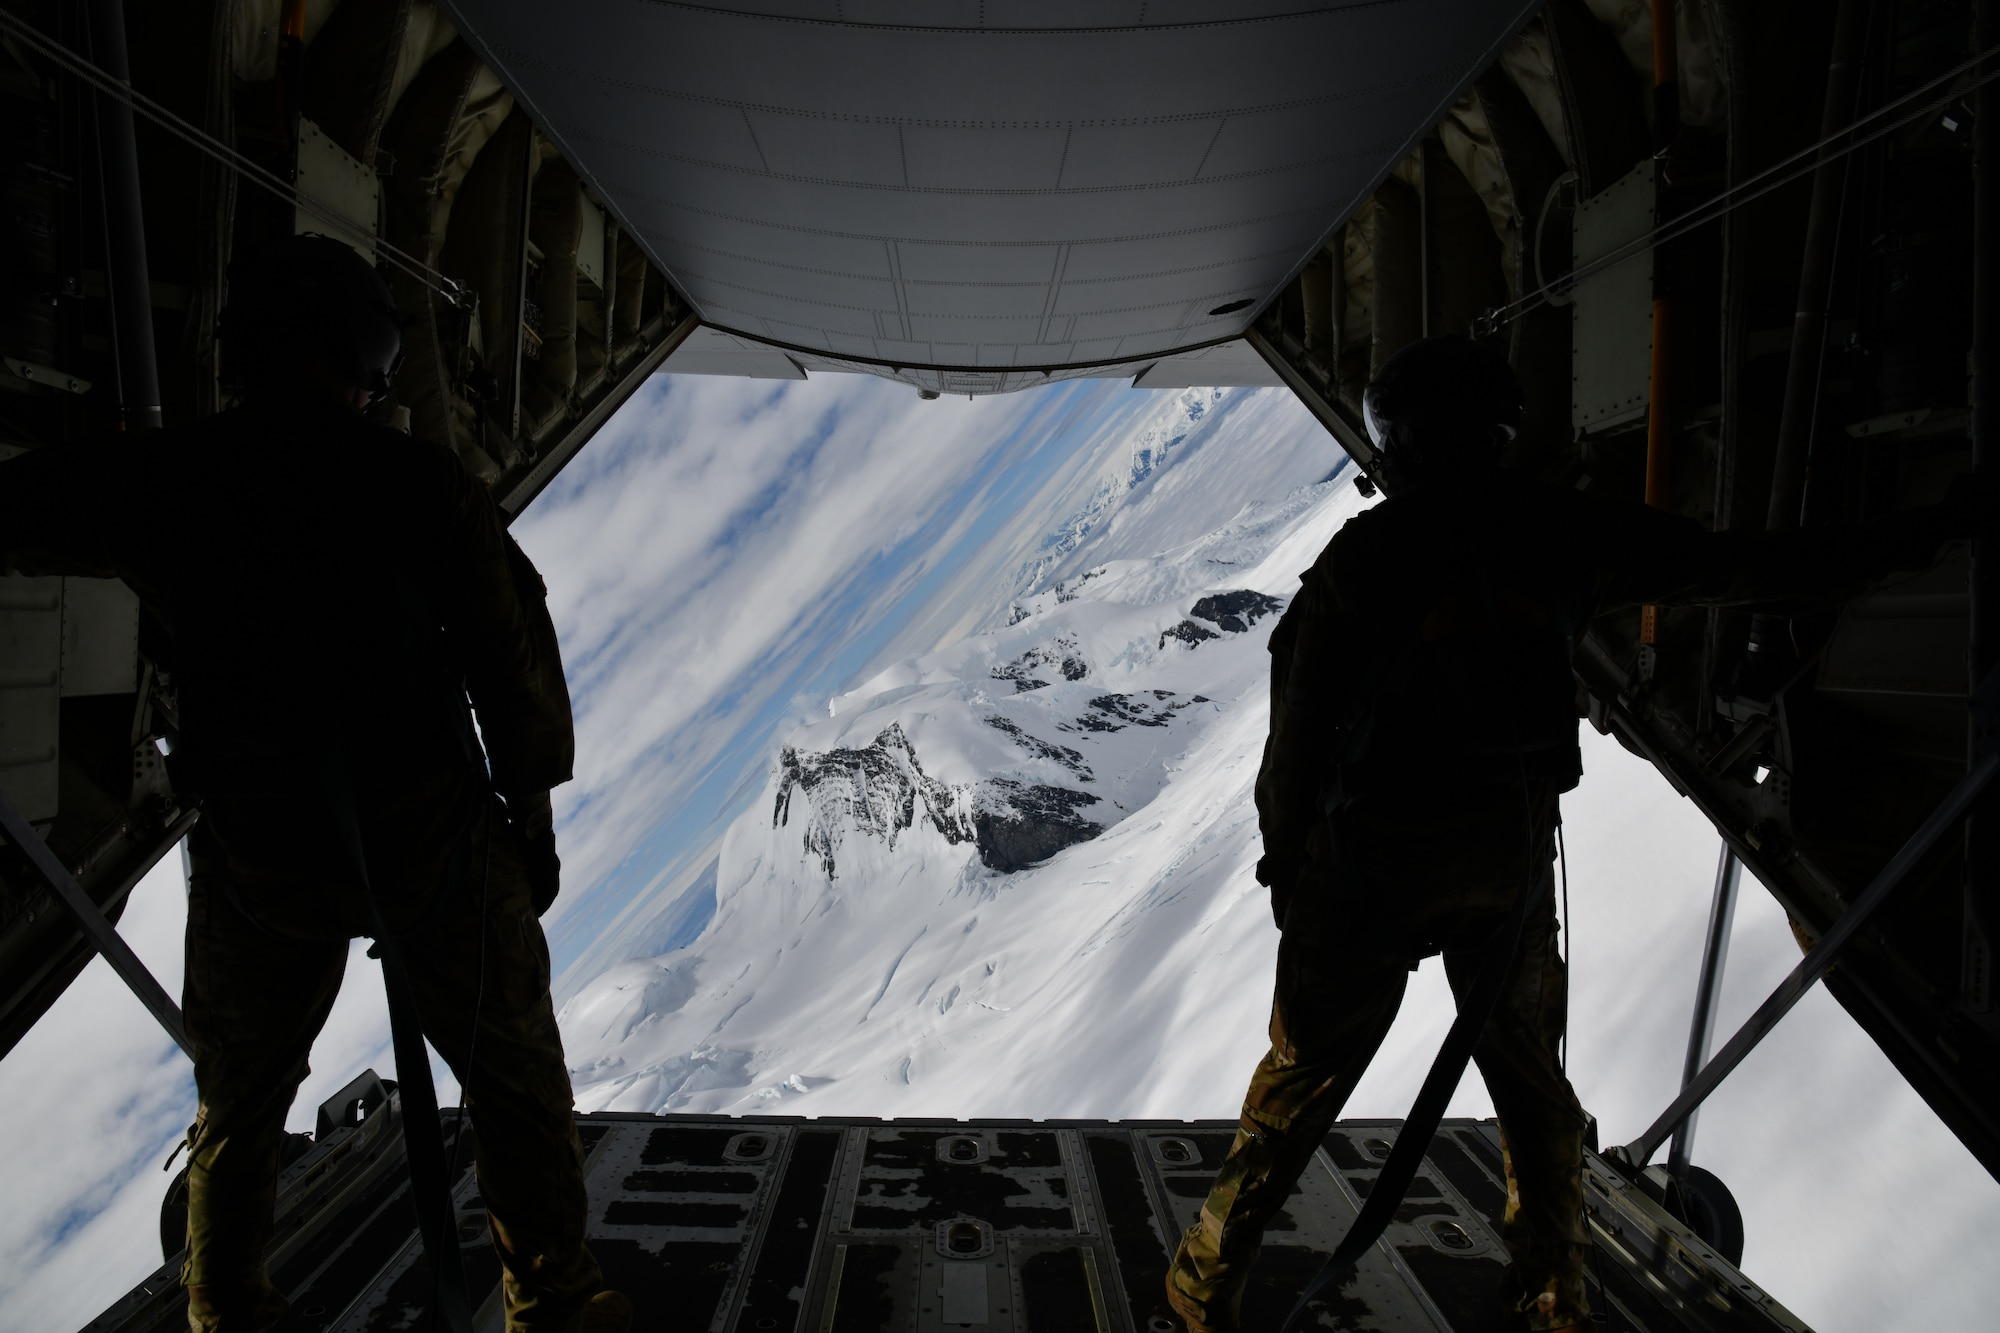 Tech. Sgt. Jacob Fountain (left) and Master Sgt. Gary Bryant (right), 815th Airlift Squadron loadmasters, hold on after opening the cargo door ramp while the pilots conduct low-level tactical flight training patterns during a training exercise at Joint Base Elmendorf-Richardson, Alaska, July 13-16, 2021. The terrain of the mountain, valleys and along with the colder temperatures provided a different challenge for the low-level flights, which were an effective tactic in training for hostile environments. (U.S. Air Force photo by Master Sgt. Jessica Kendziorek)